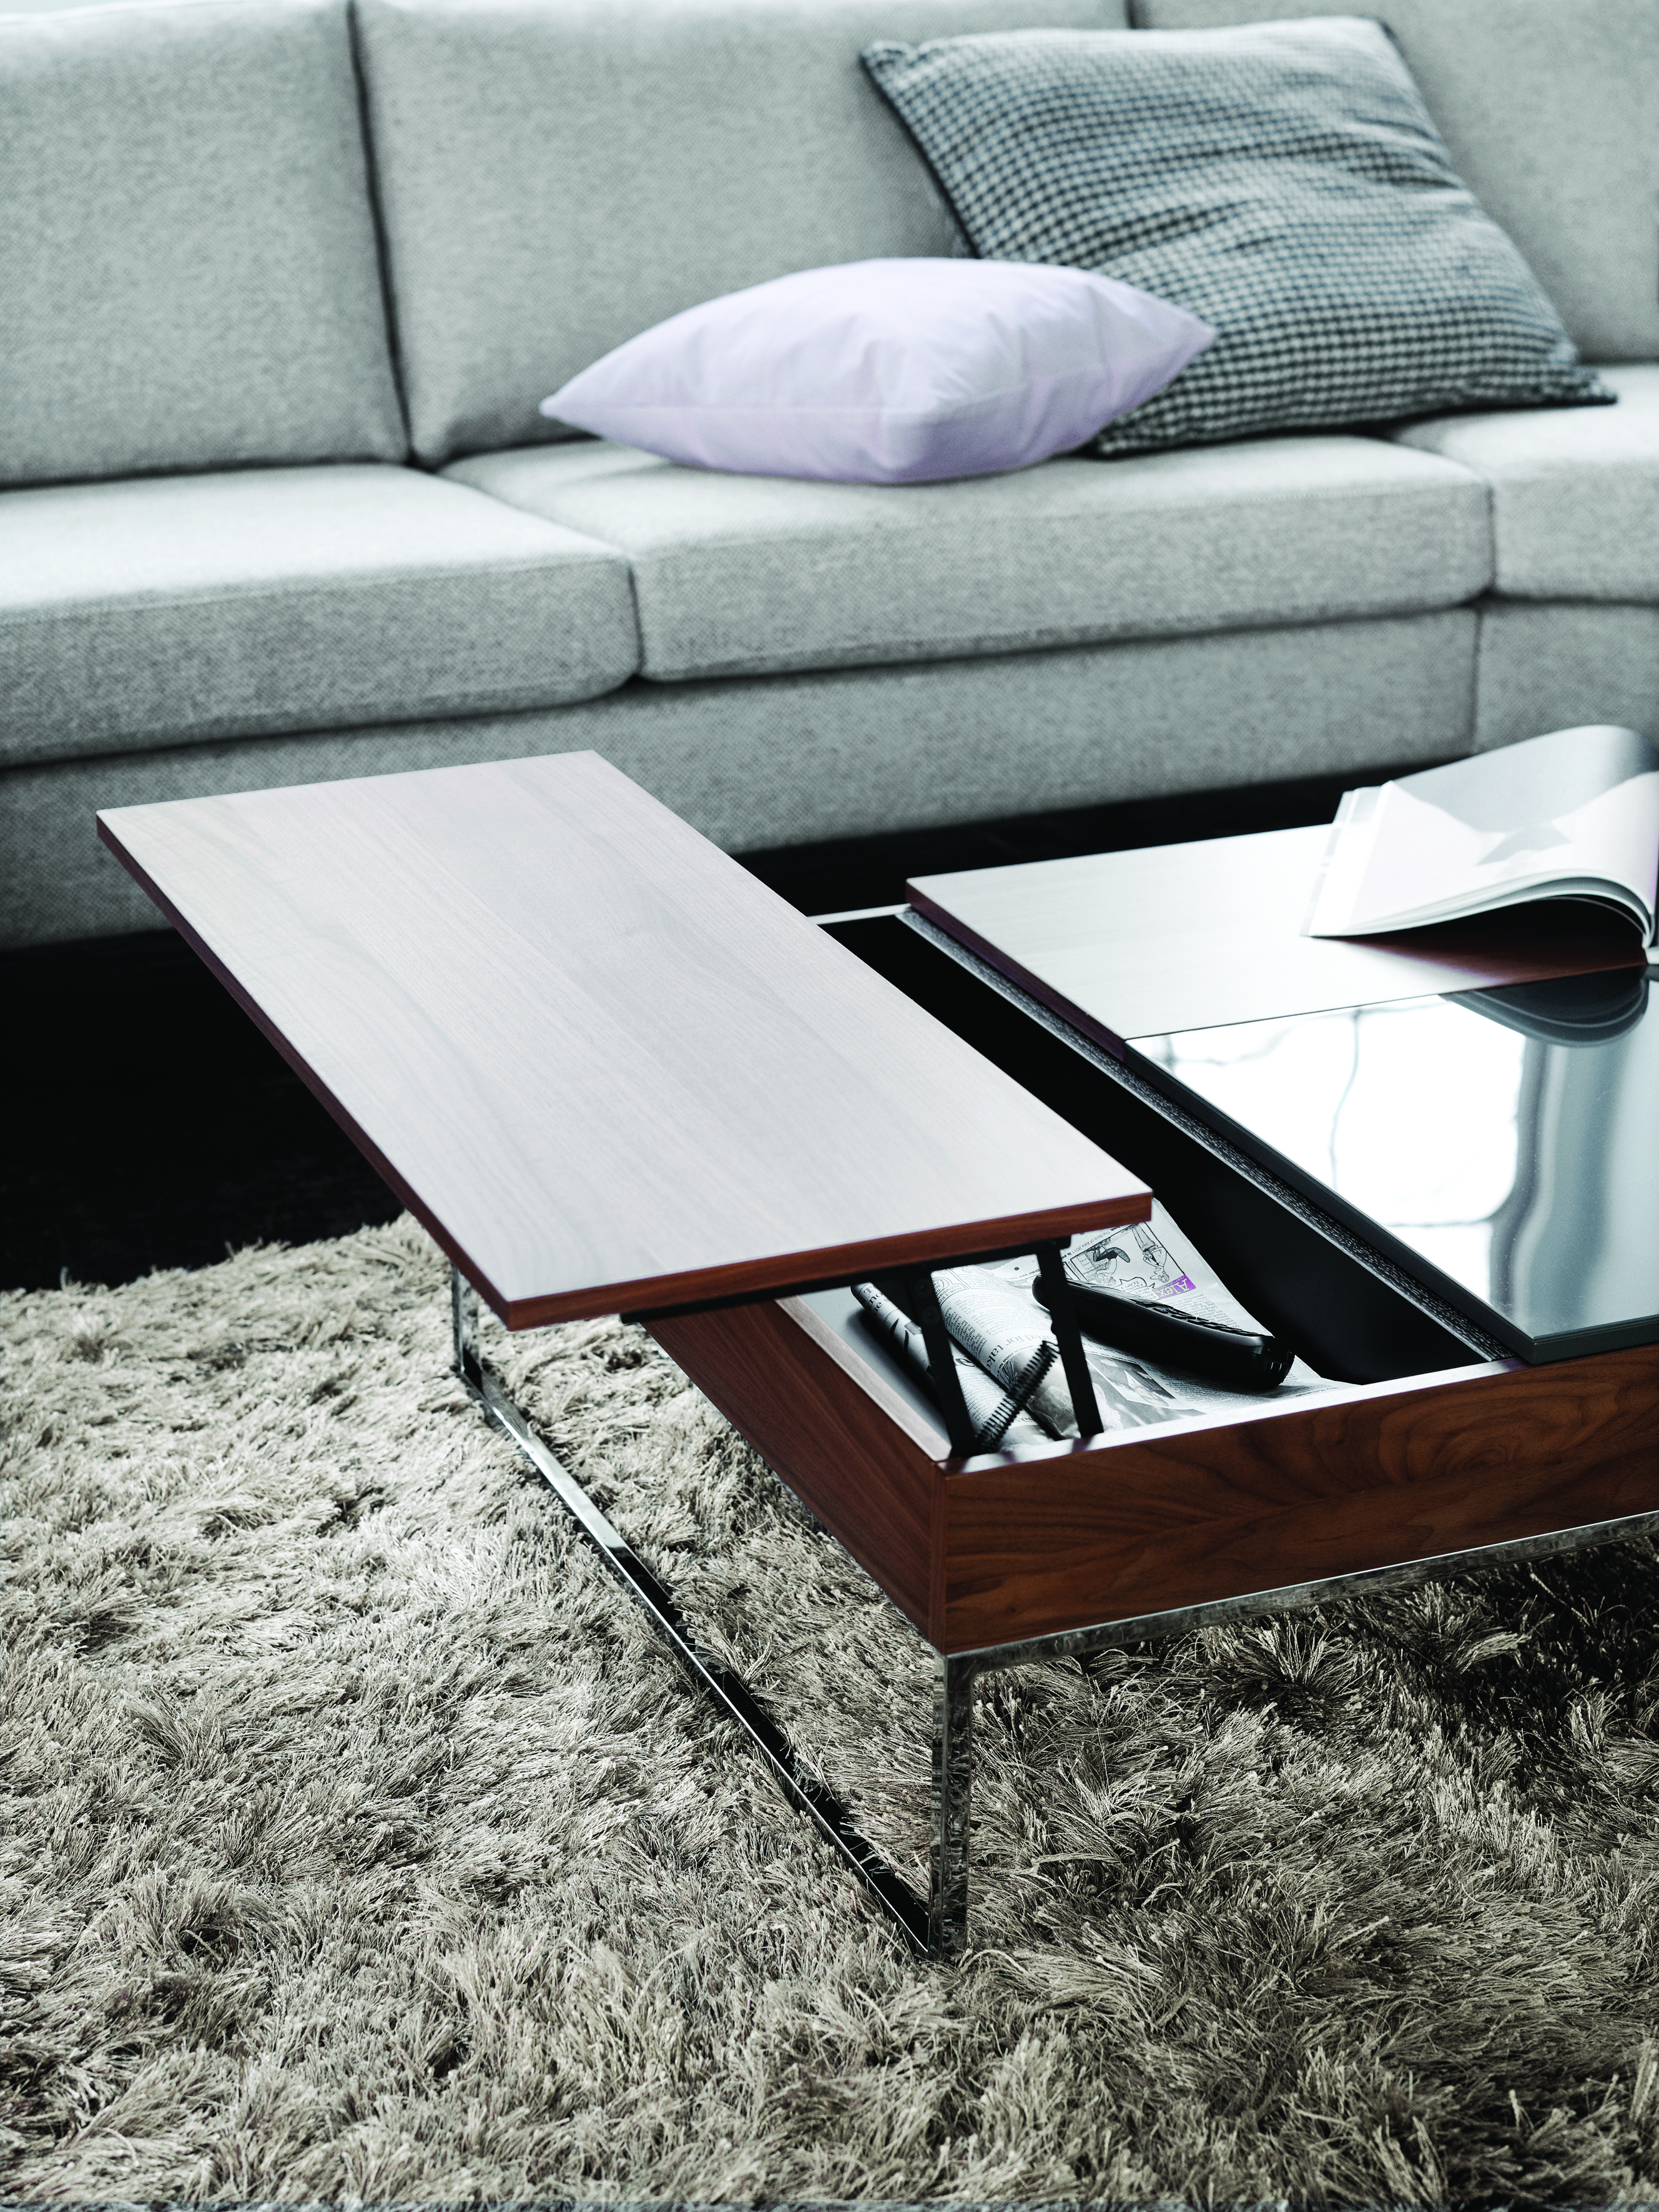 Boconcept Occa Side Table : the table top may work as an adjustable table top